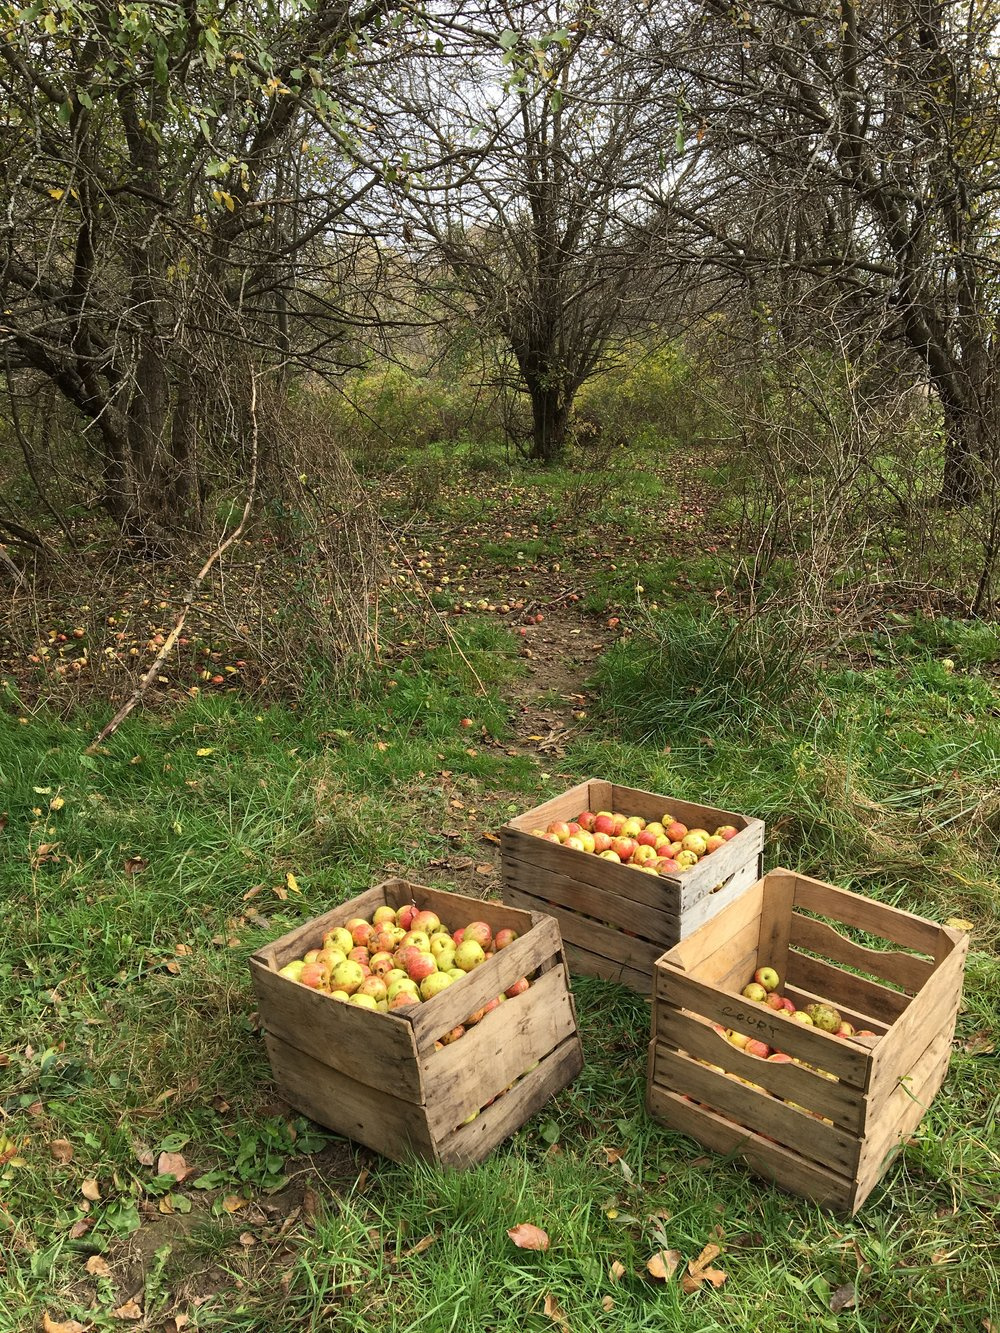 Above: A cluster of wild apple trees that provided a couple bushels of apples.